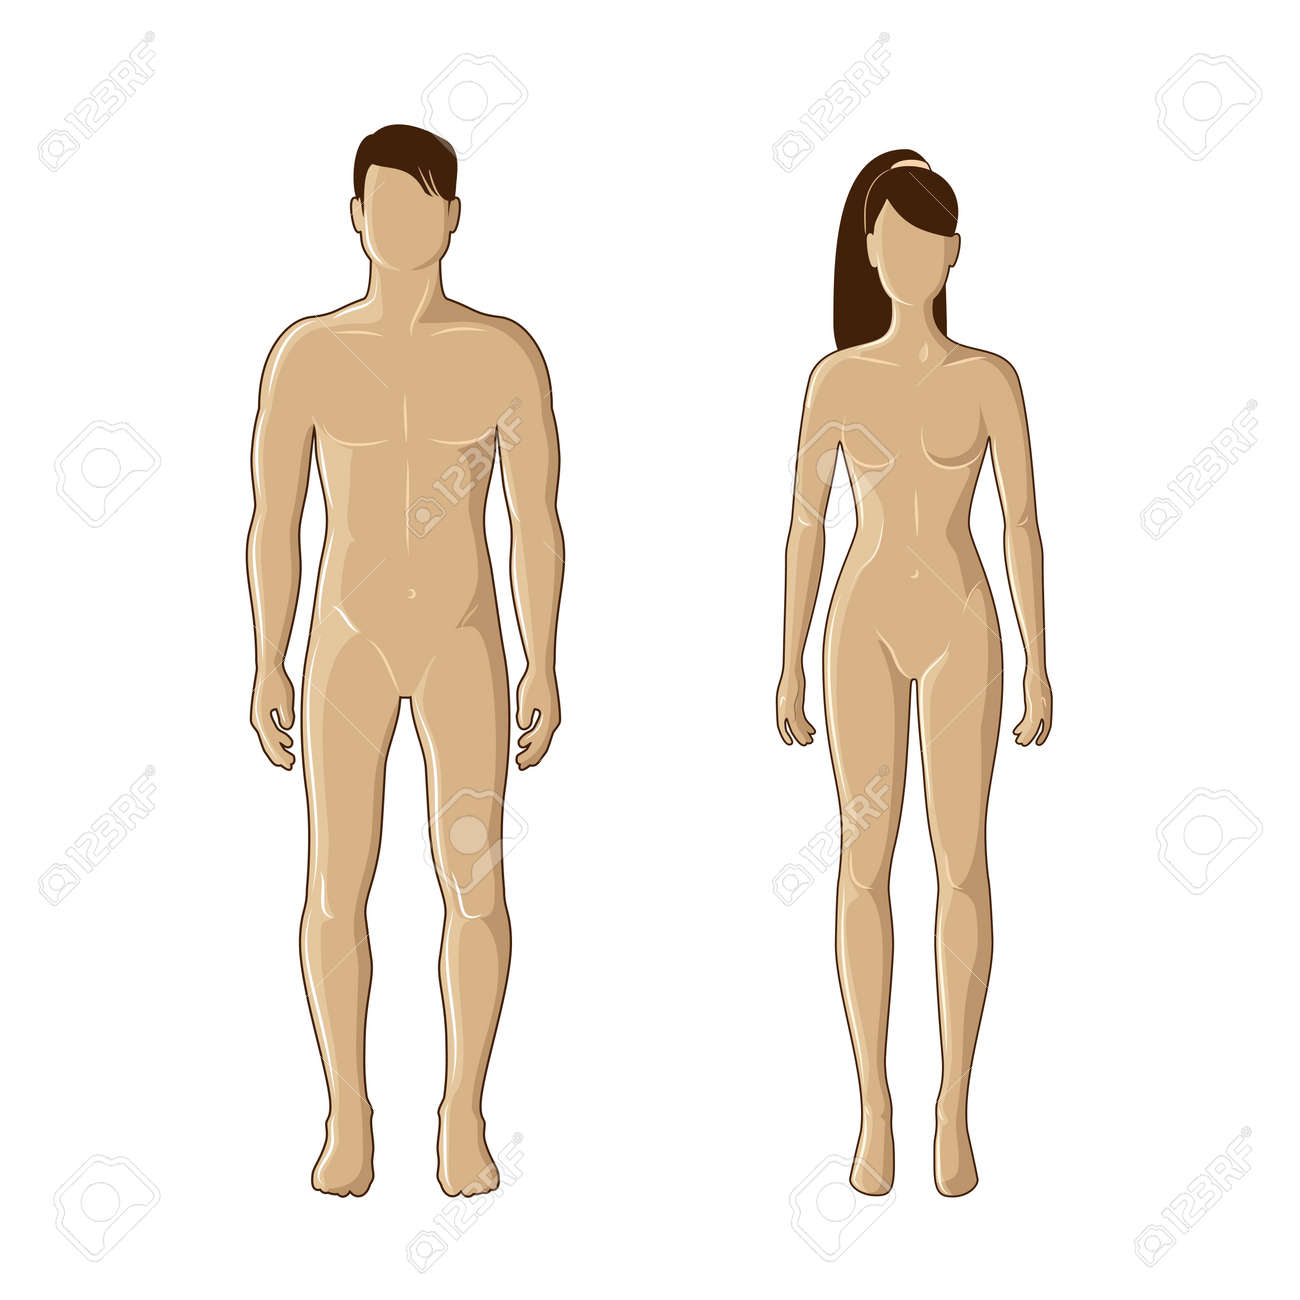 mannequins of man and woman in brown color - 17798904